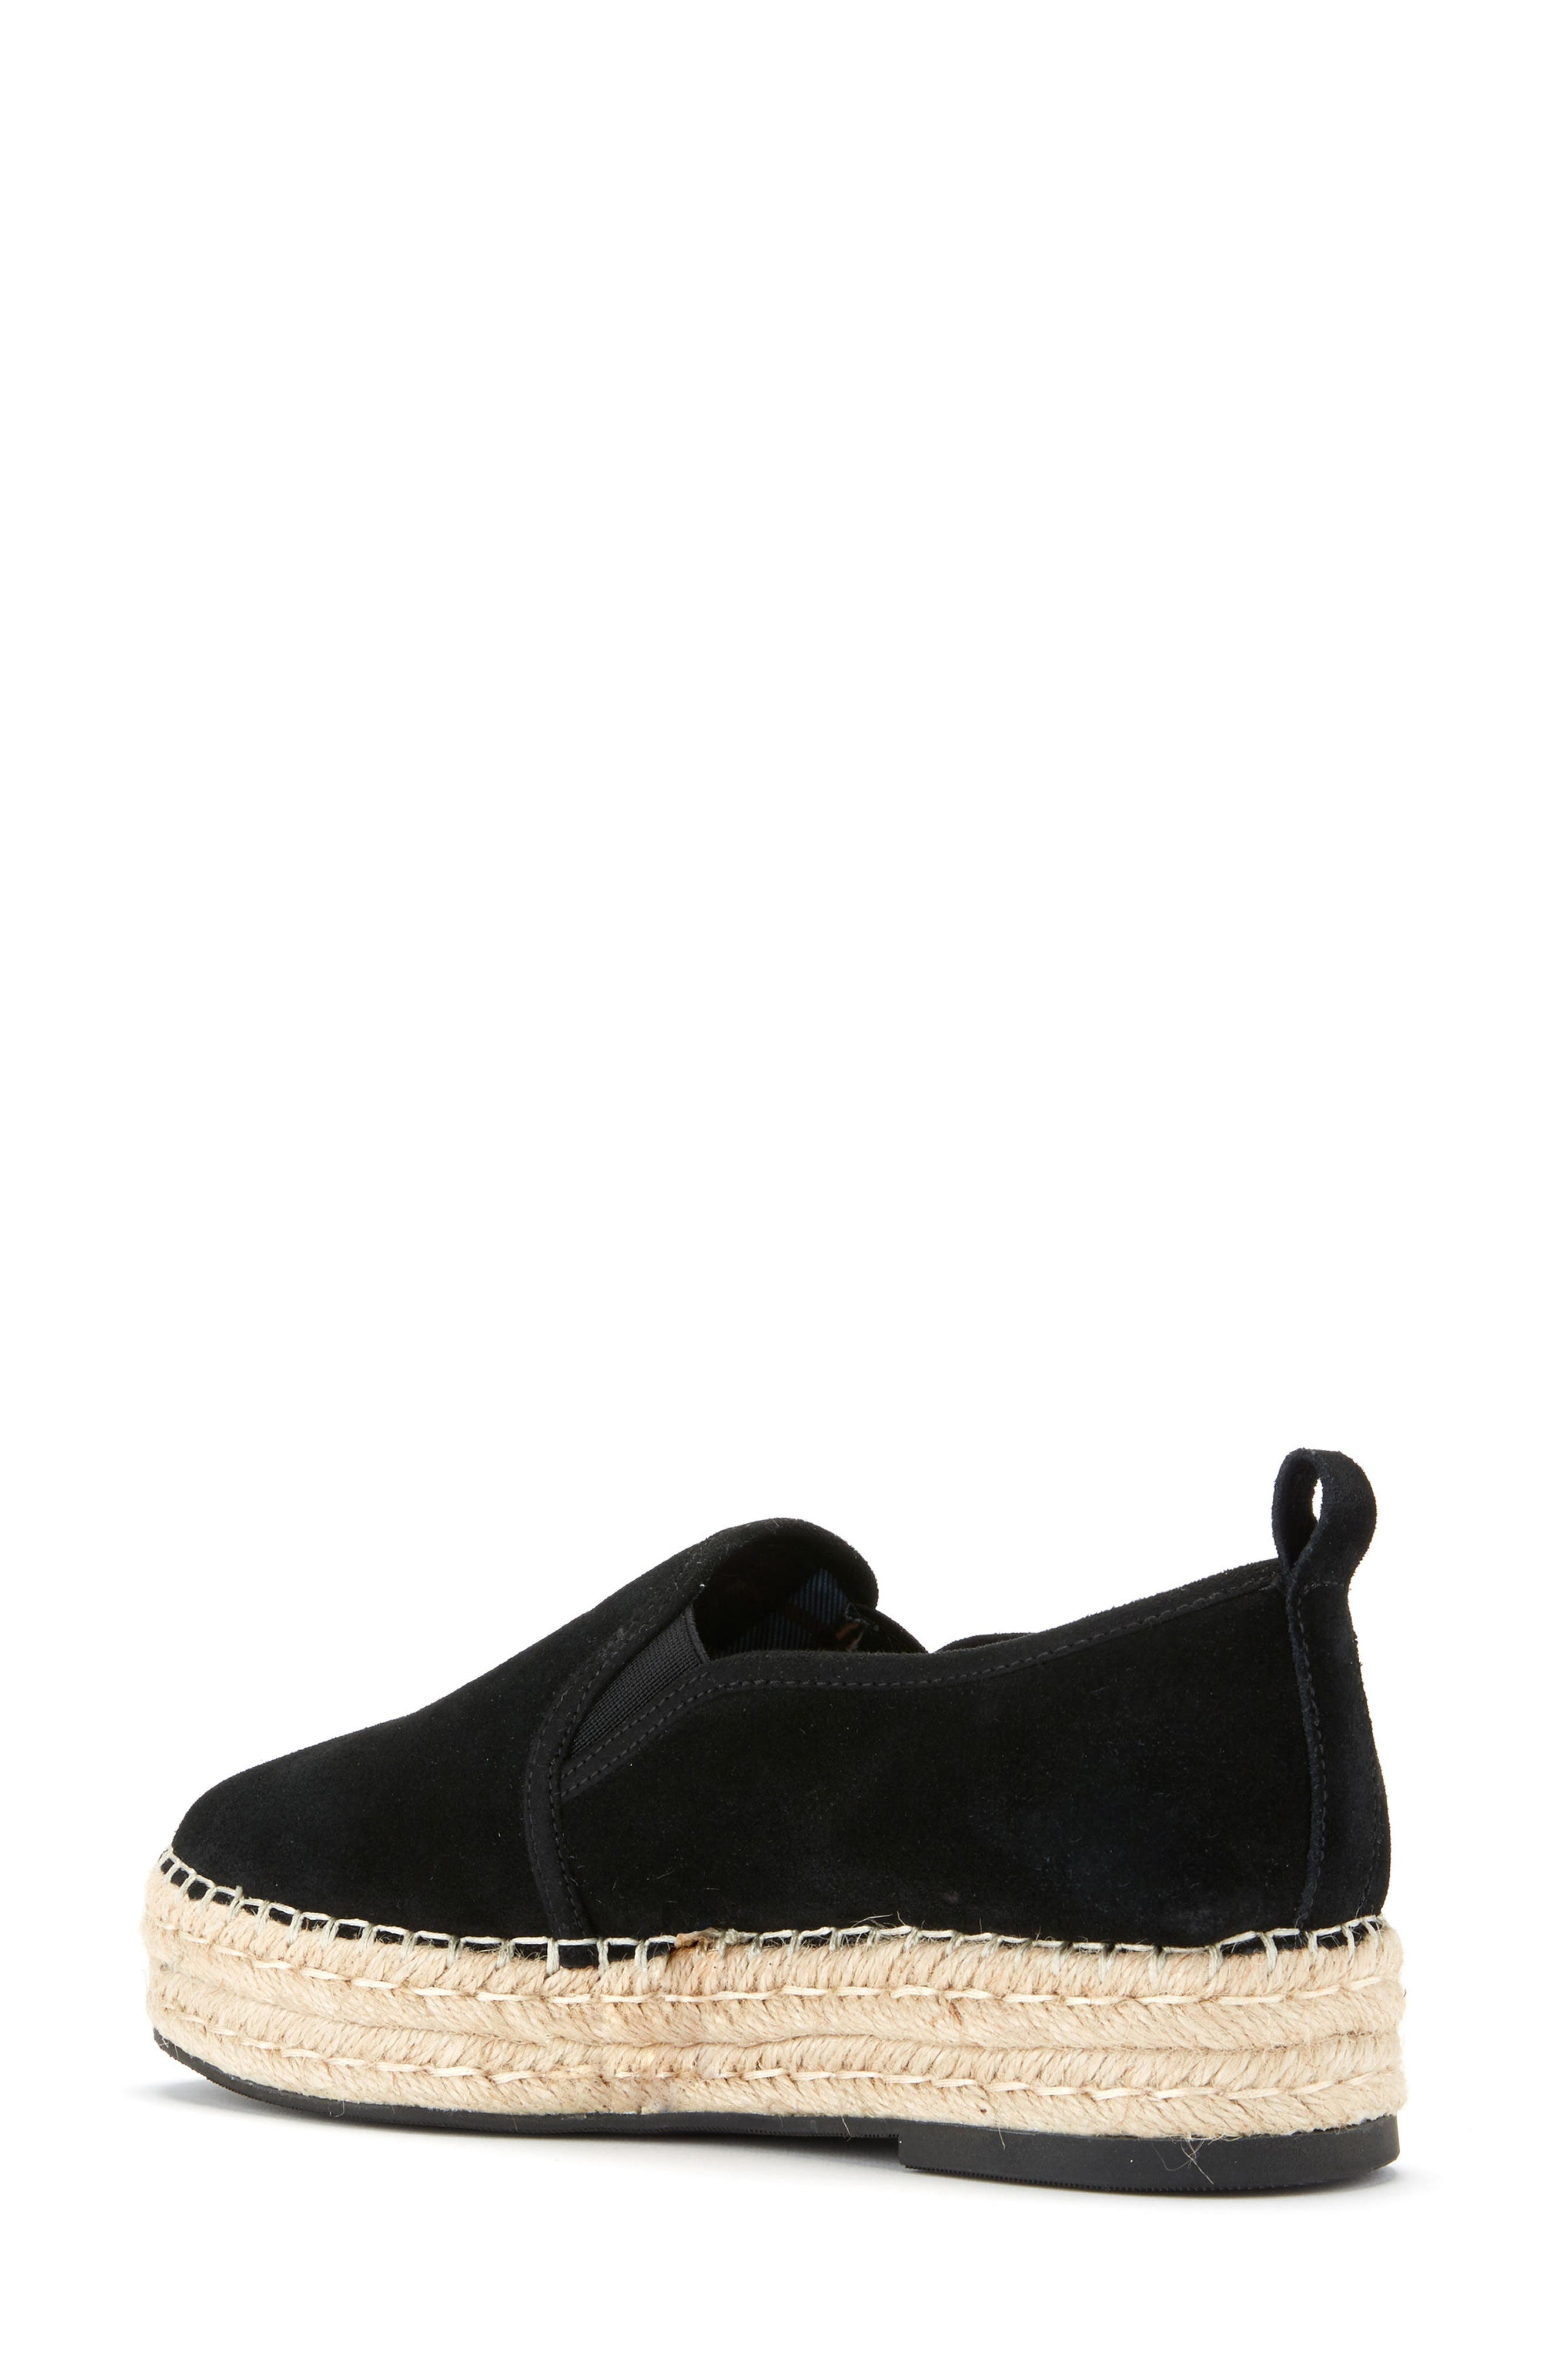 Basha Waterproof Espadrille Flat,                             Alternate thumbnail 2, color,                             015